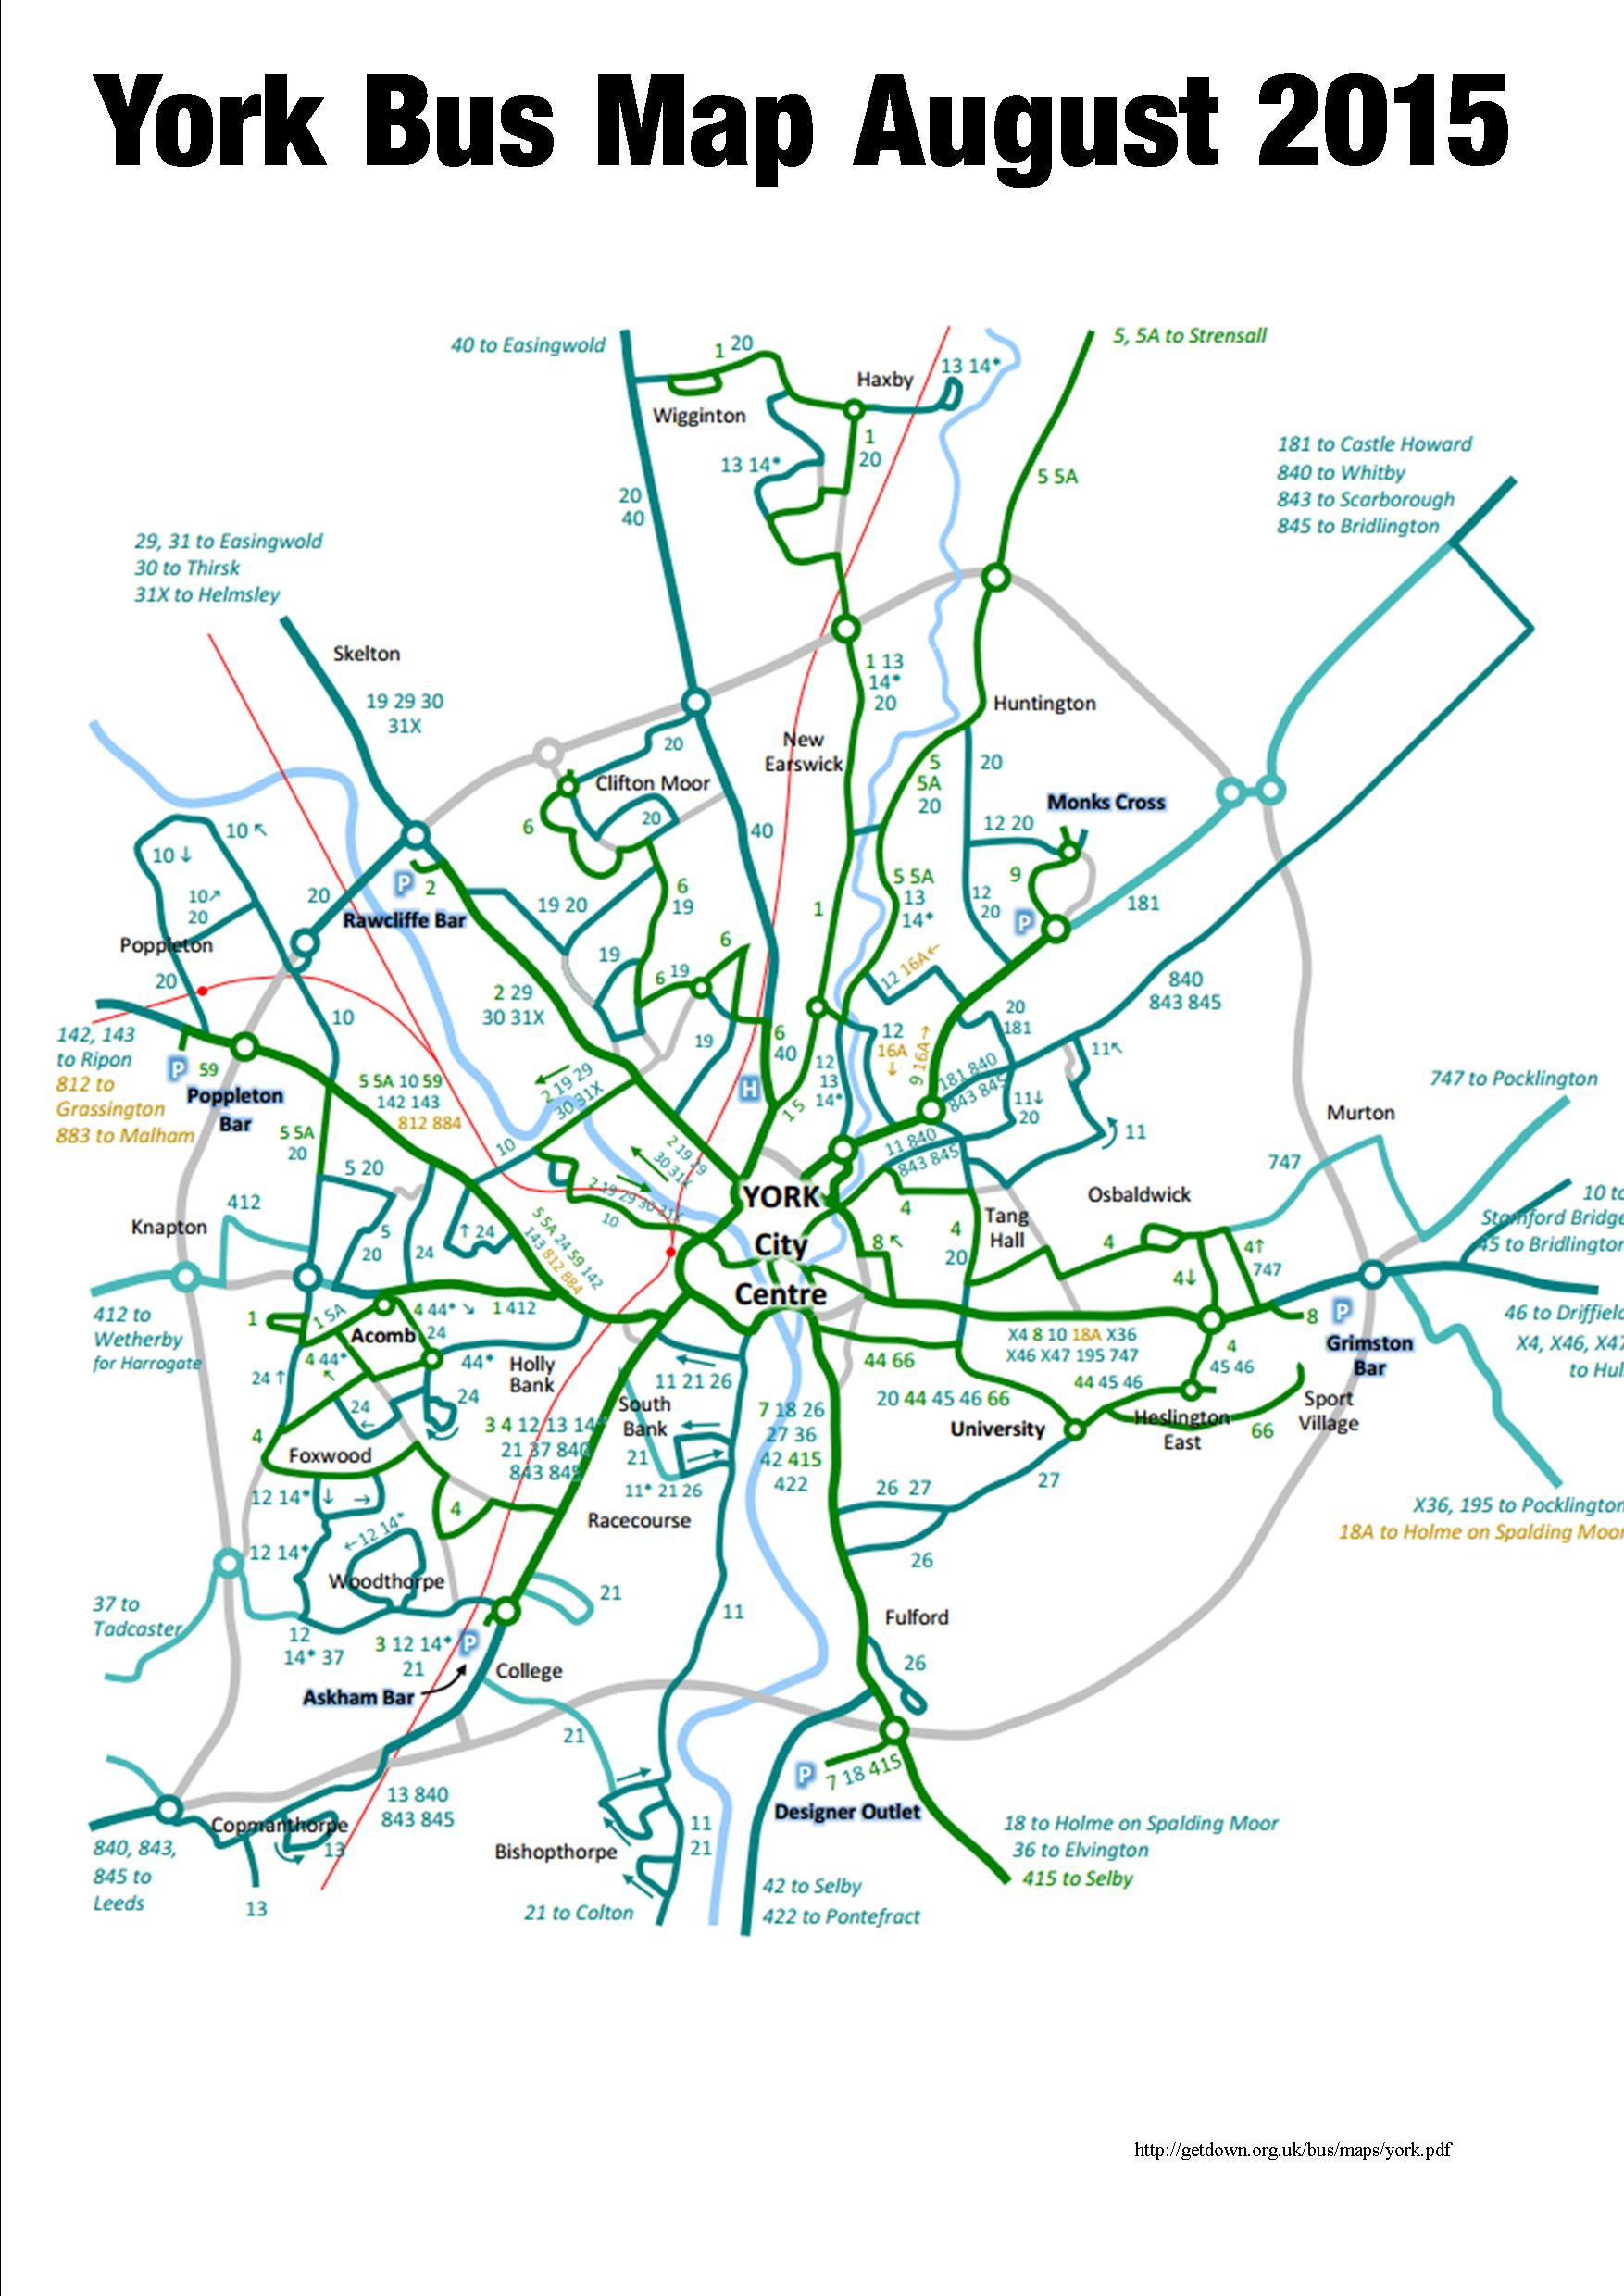 Bus map Aug 2015